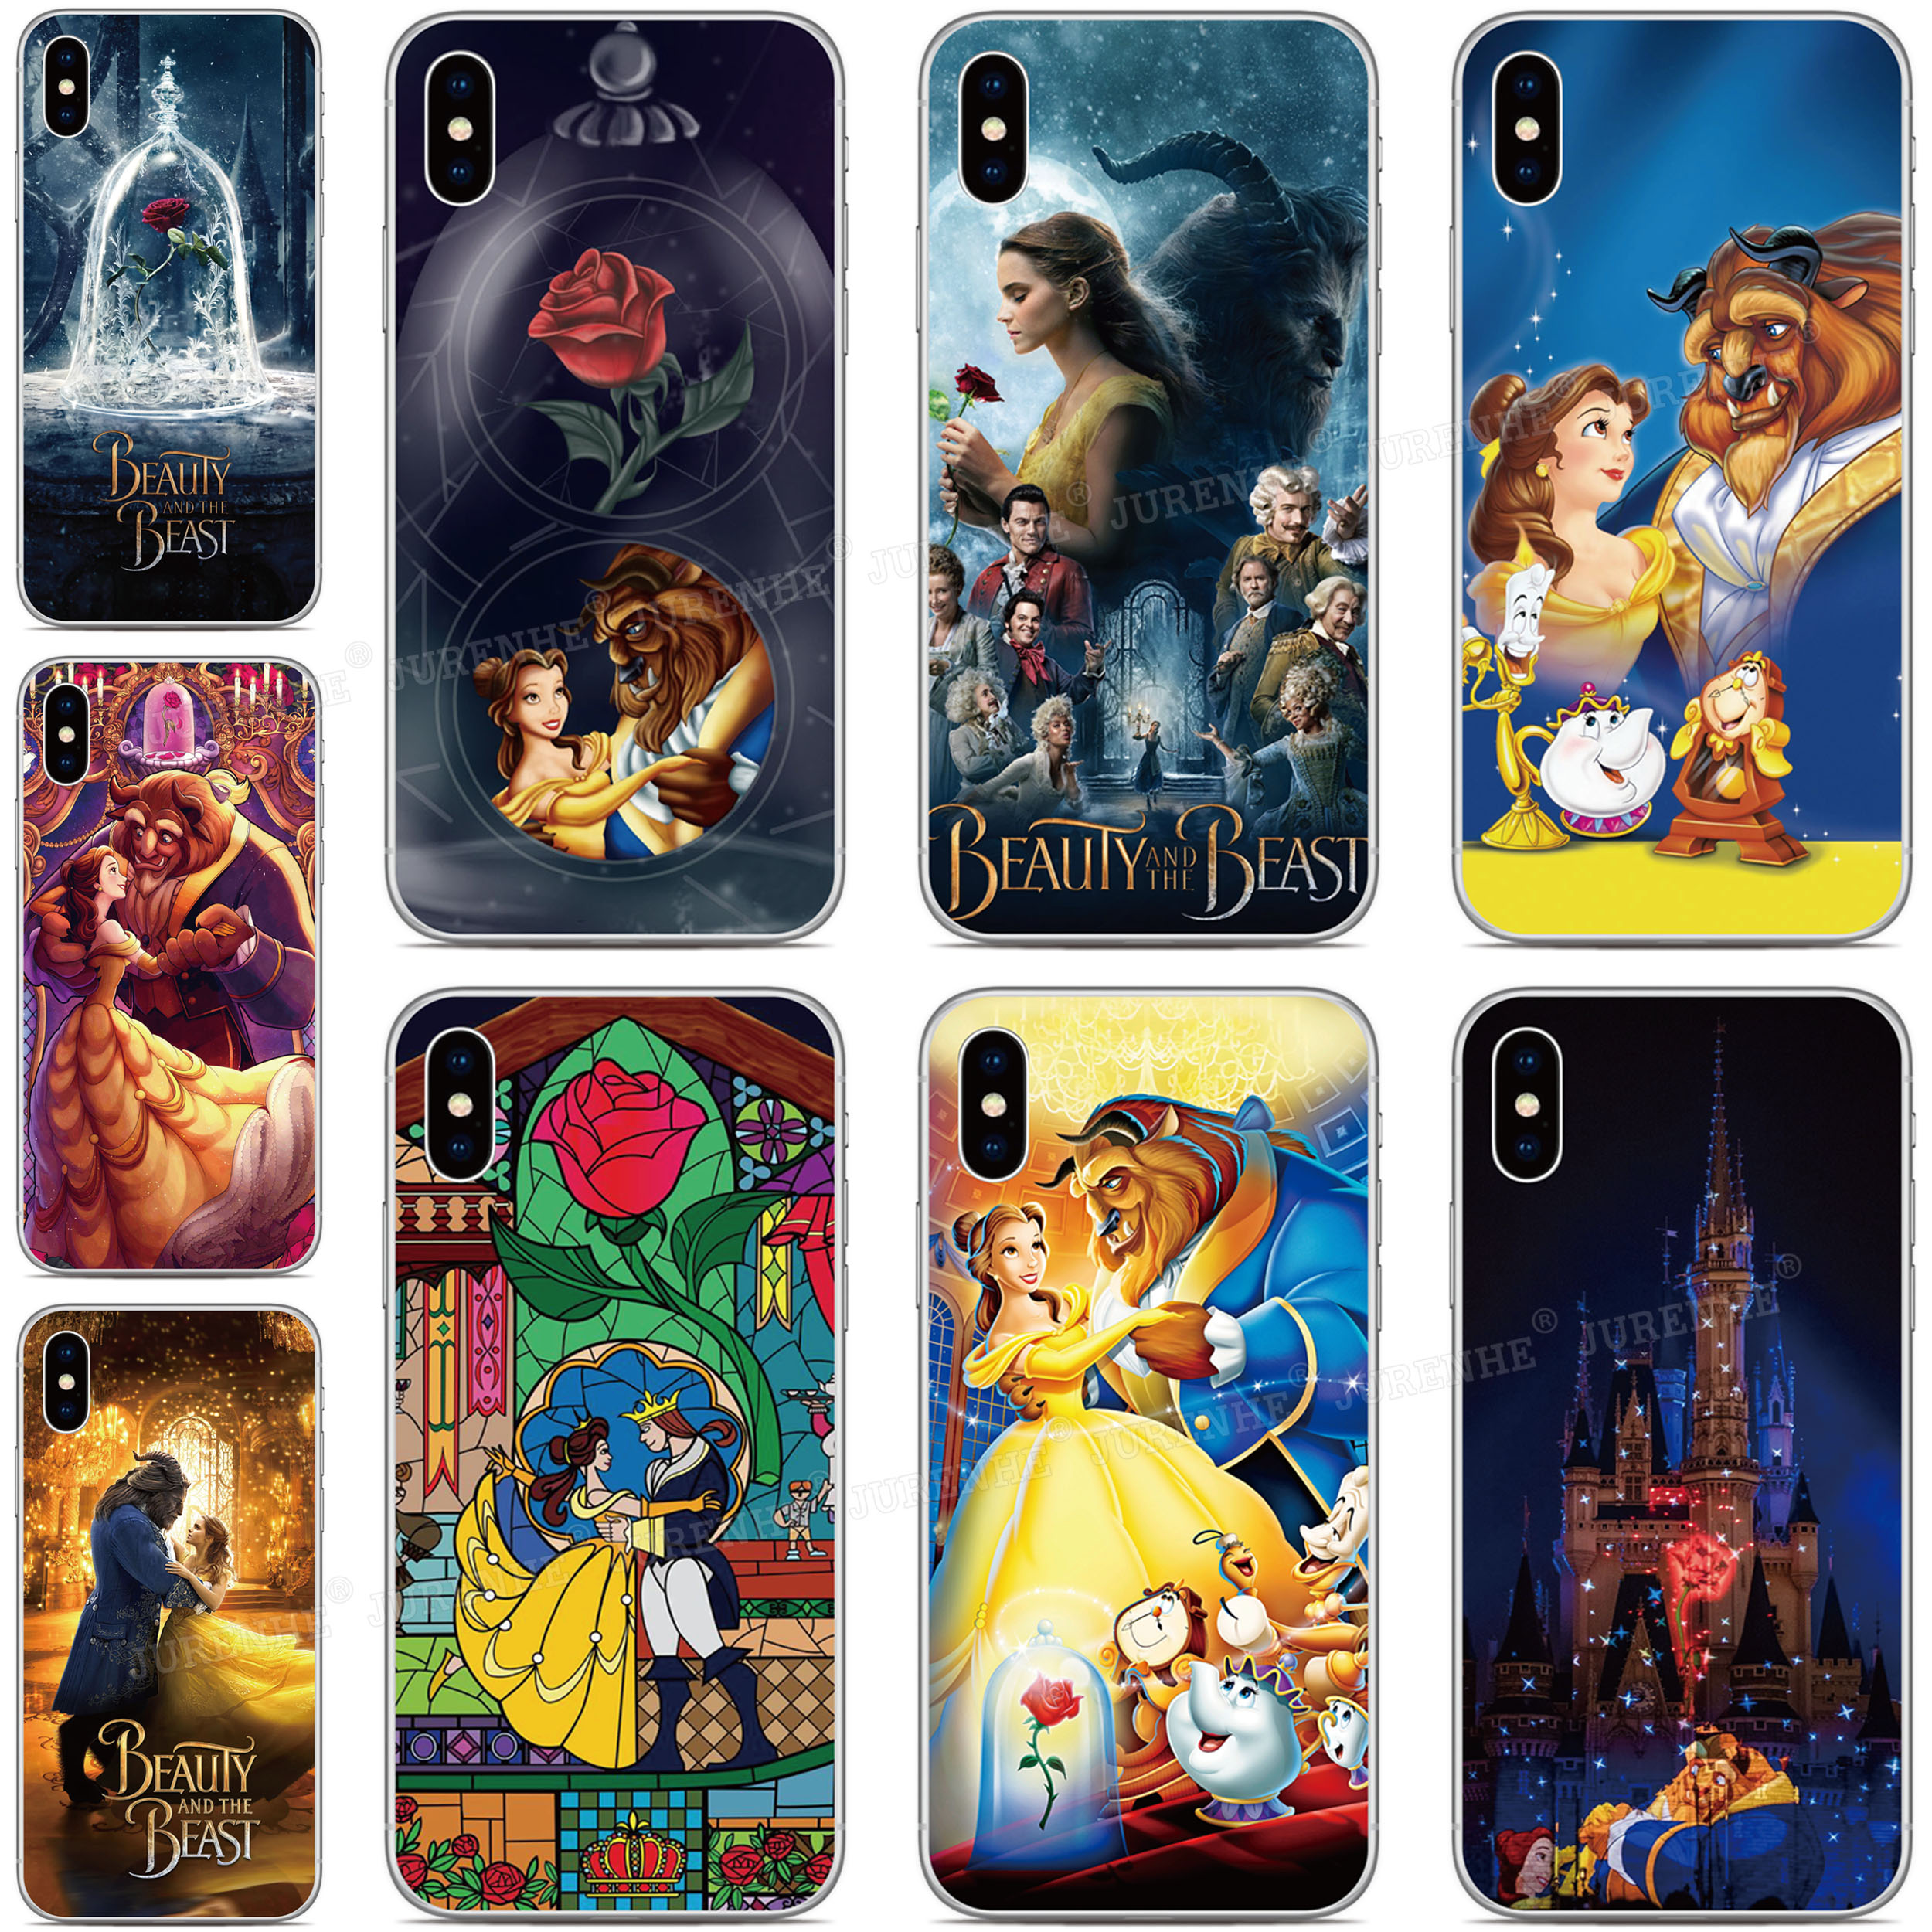 Beauty <font><b>and</b></font> The Beast Phone <font><b>Case</b></font> For <font><b>Sony</b></font> <font><b>Xperia</b></font> XZ5 5 XZ3 XZ2 XZ4 Compact ACE XA3 XA1 Plus XA2 Ultra L4 L3 L2 20 8 <font><b>10</b></font> 1 II <font><b>Cover</b></font> image